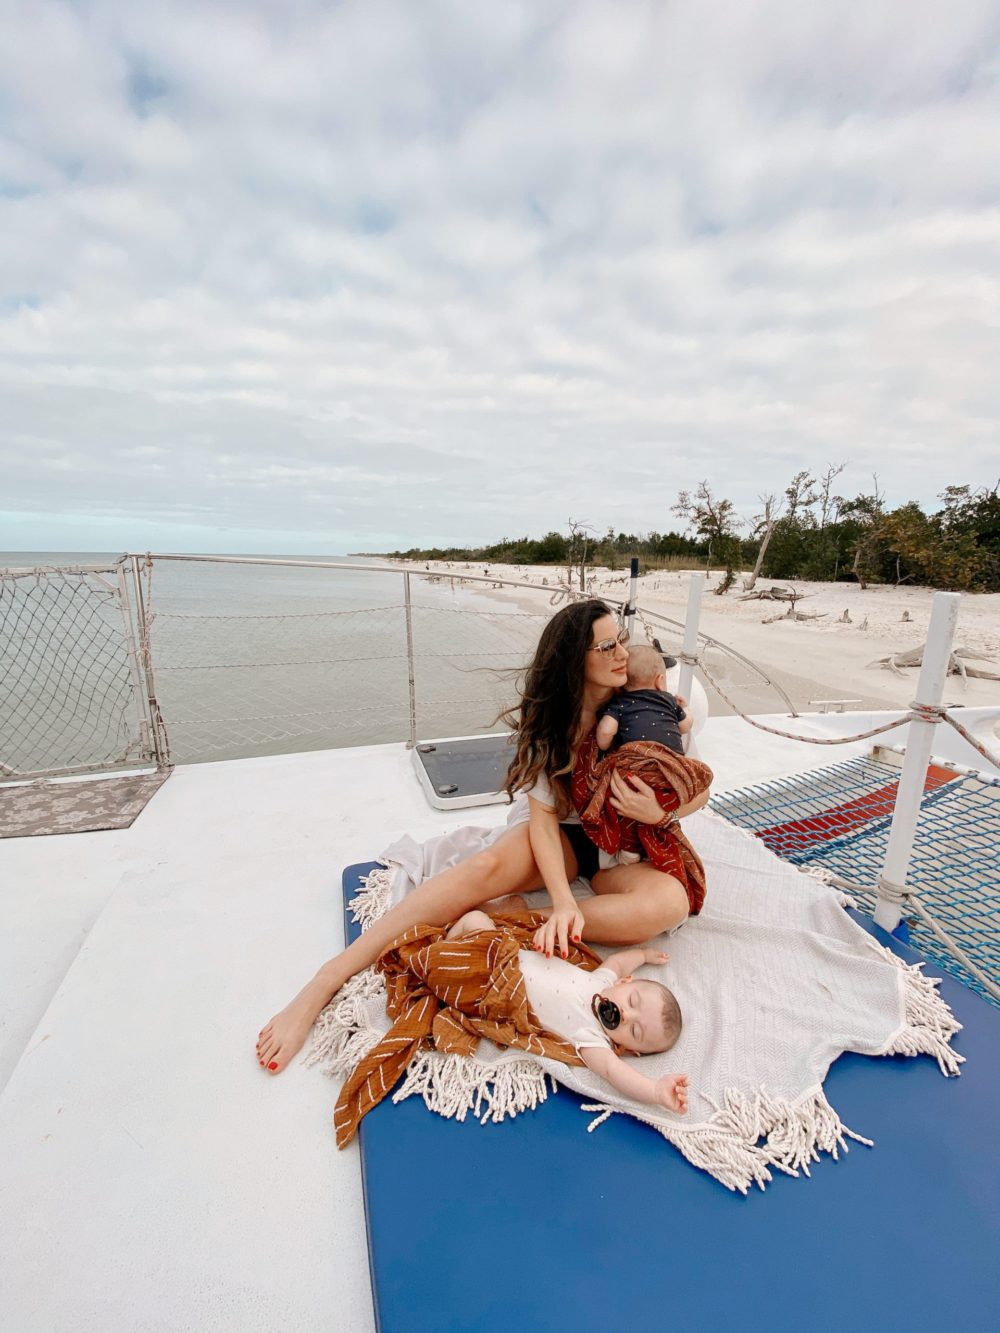 Relaxing catamaran trip with Sweet Liberty, the largest Sailing Catamaran in Southwest Florida. Baby-friendly activity in Florida! | Spectacular Things to Do in Naples FL This Weekend by popular Florida blog, Fresh Mommy Blog: image of a woman sitting on a boat with her twin babies.